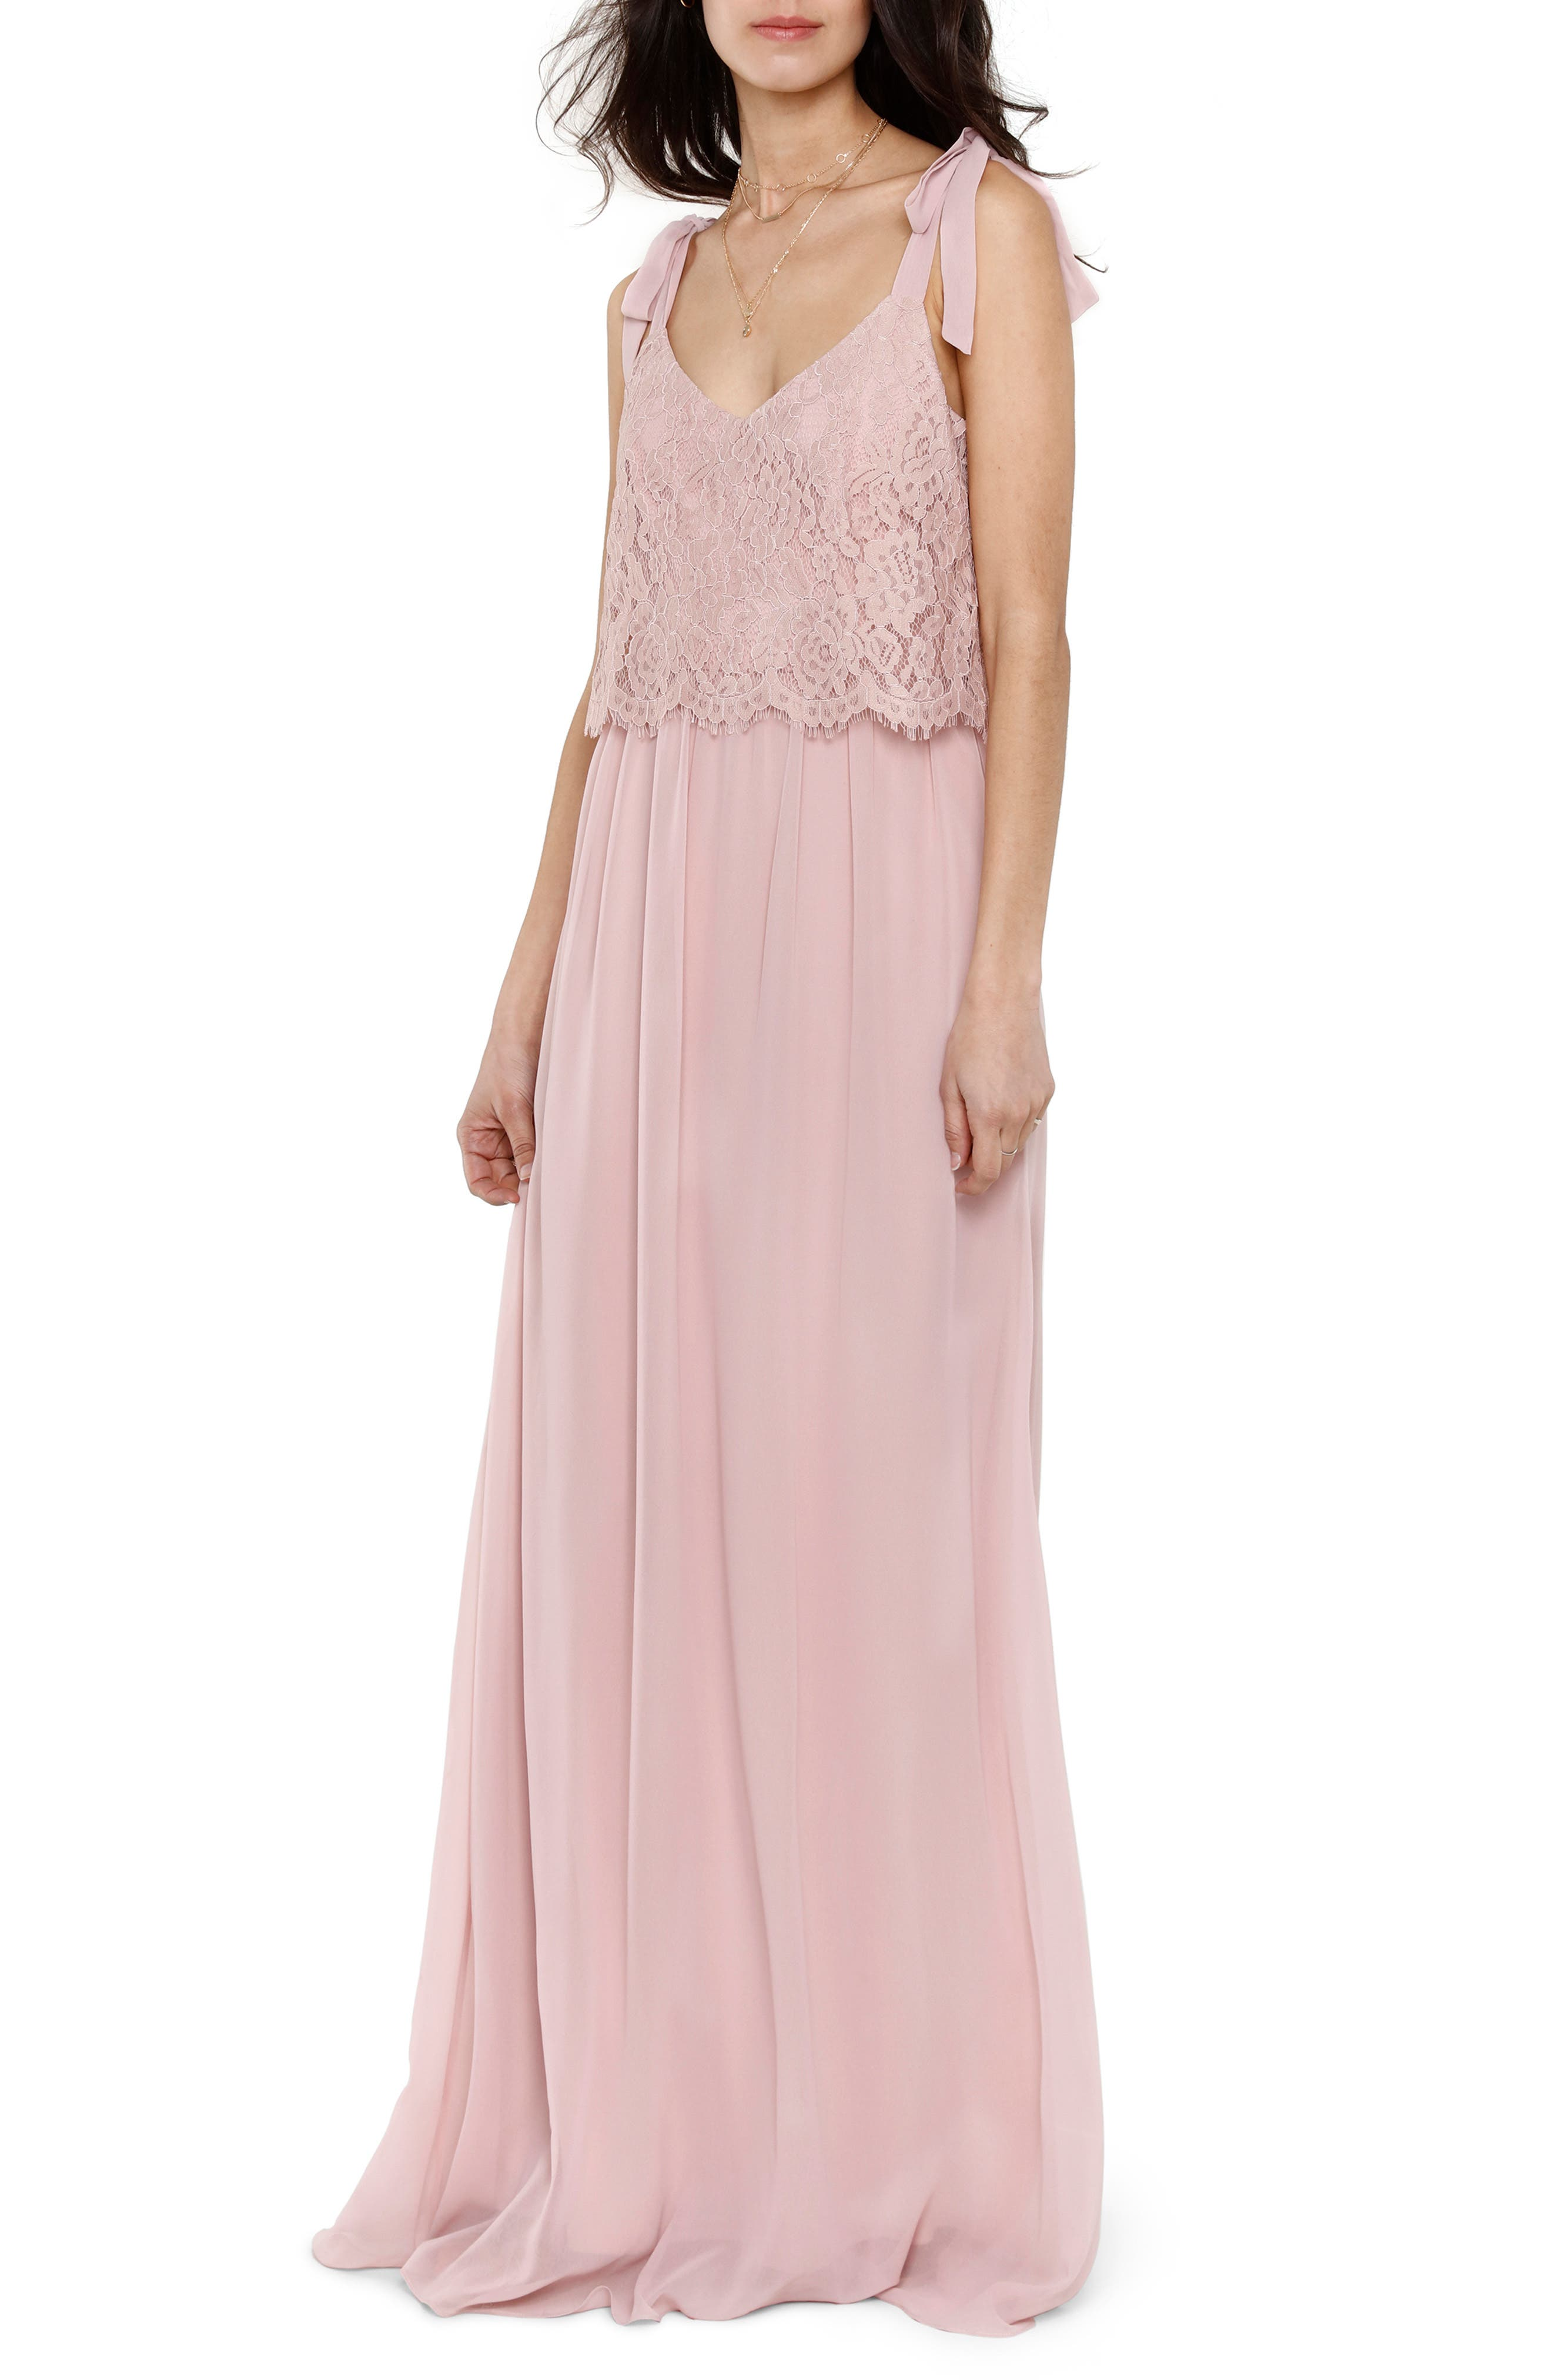 Koko Tie Shoulder Lace Bodice Gown,                         Main,                         color, MAUVE